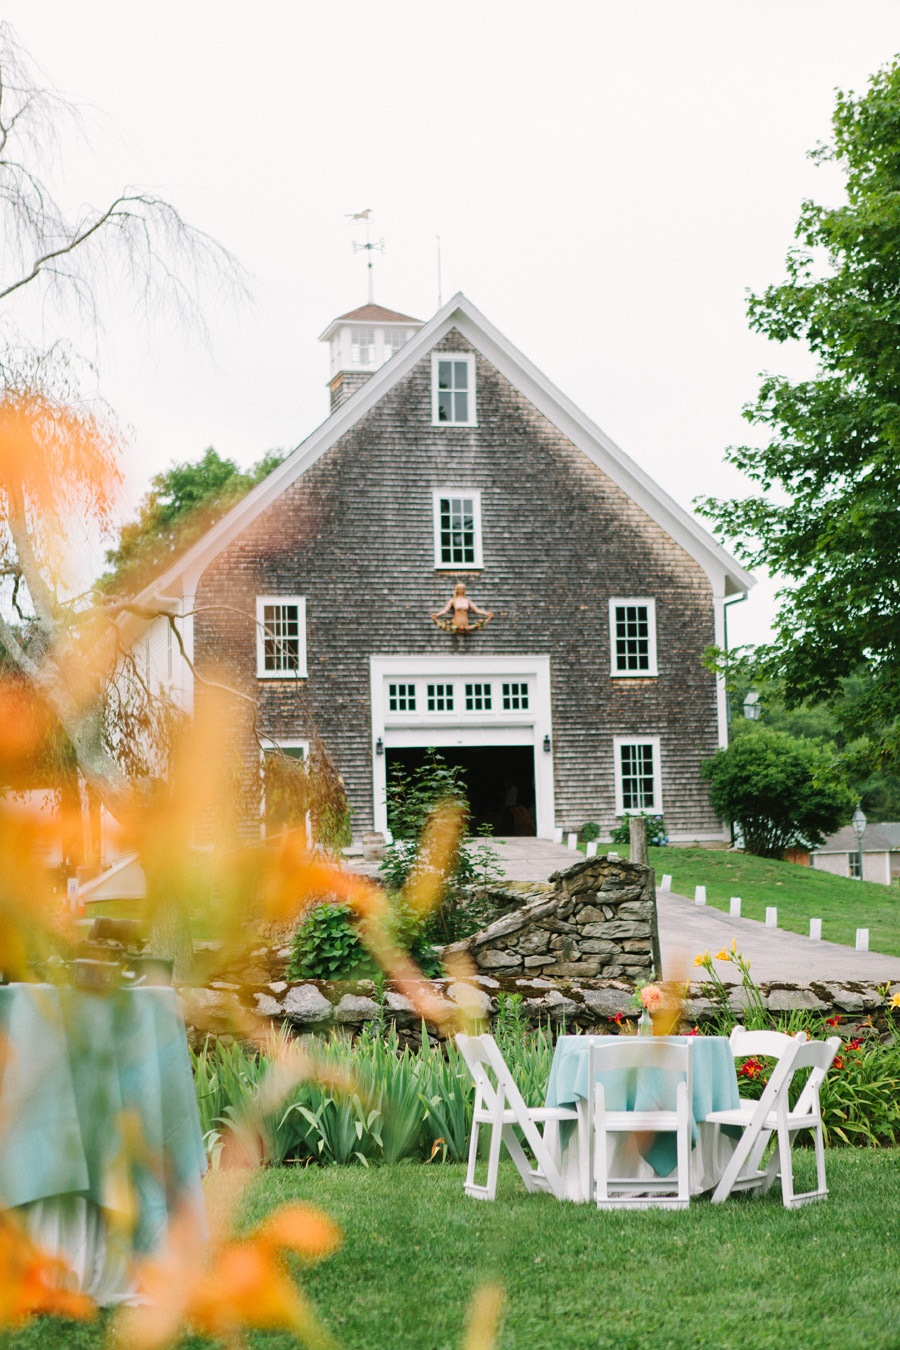 rhode-island-wedding-19-06102015-ky